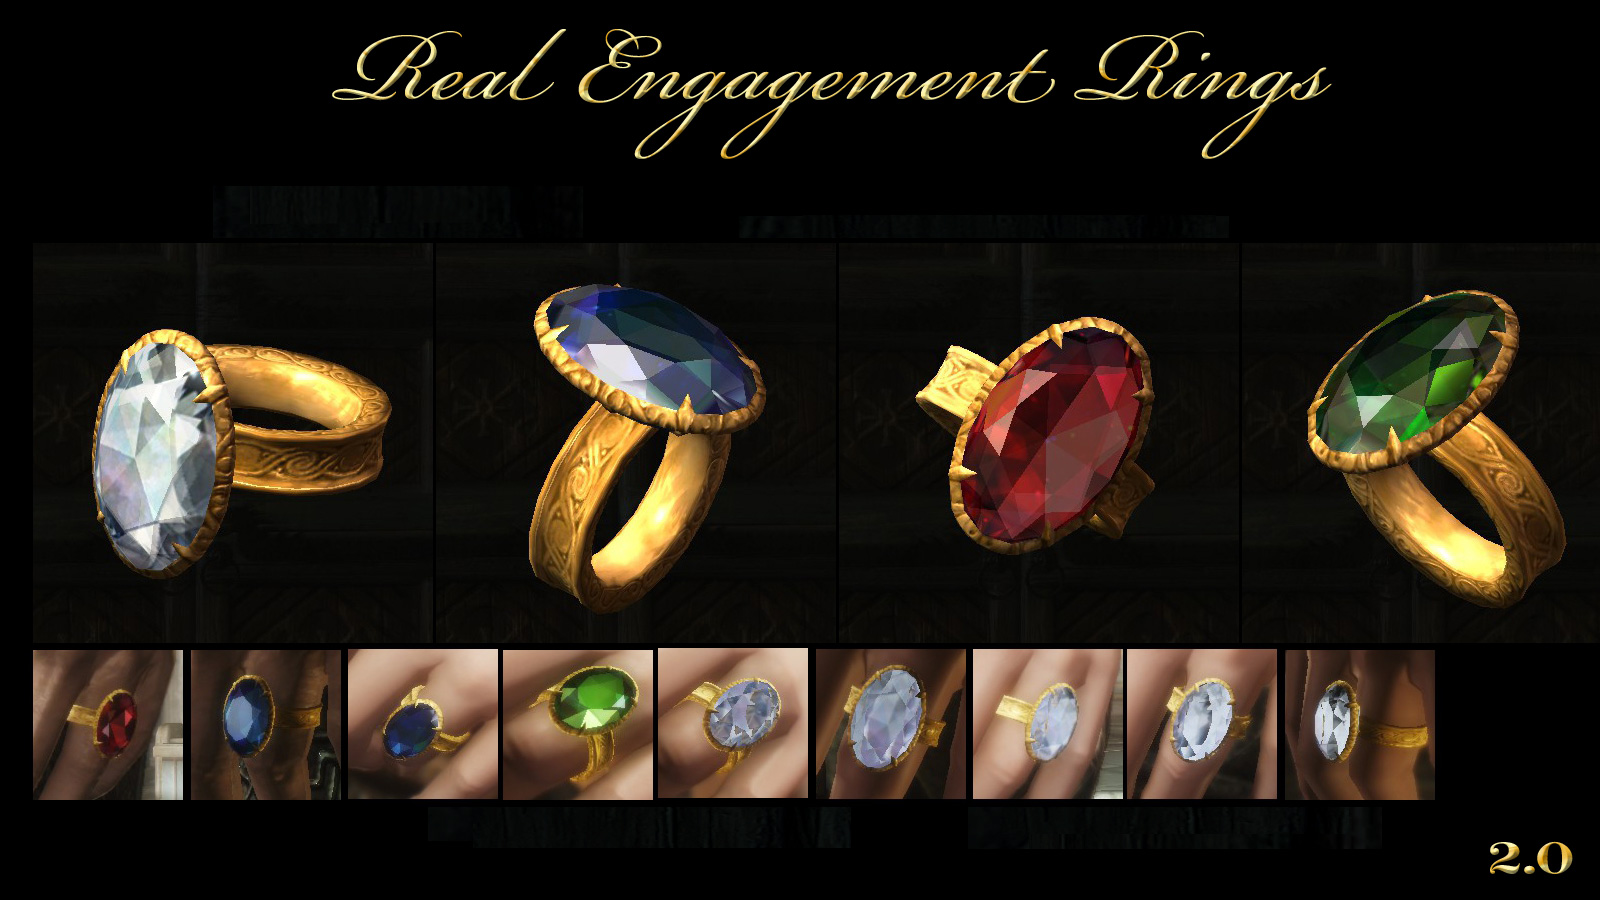 premier jewelry shop collections engagement the unique fehren collection mod rings eva white fine